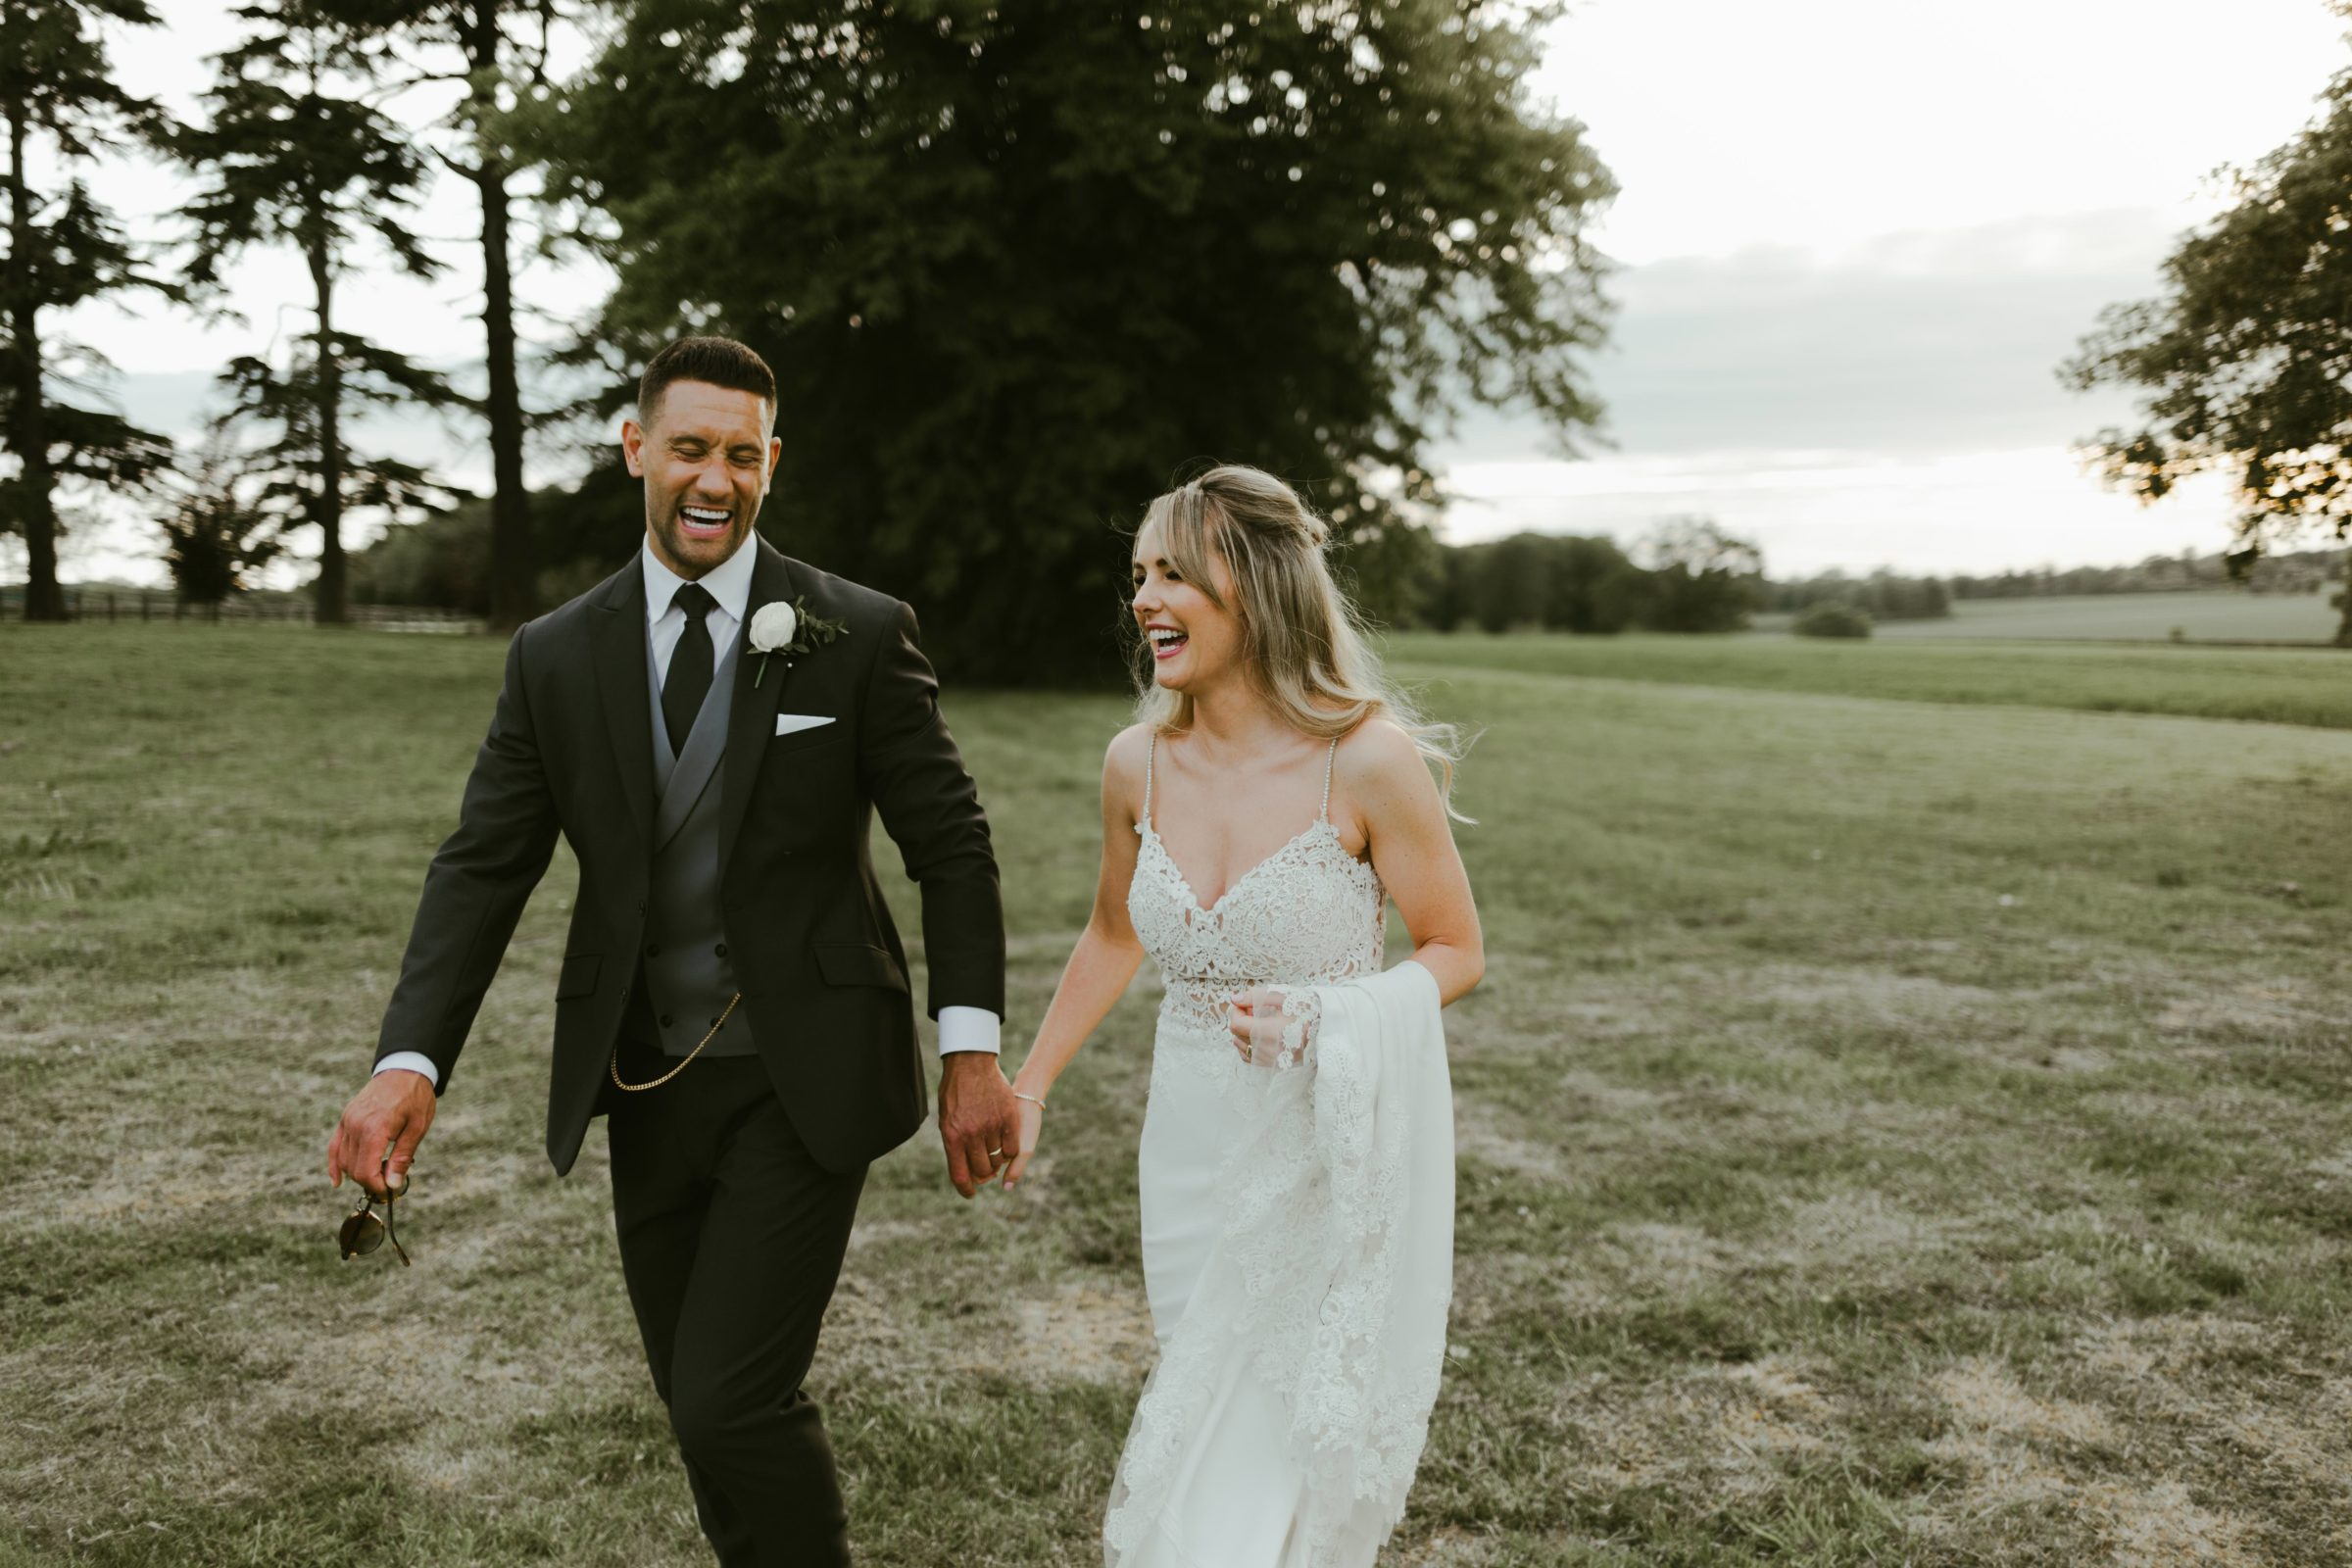 oakley-hall-wedding-venue-couple-surrey-basingstoke-photography-photographer